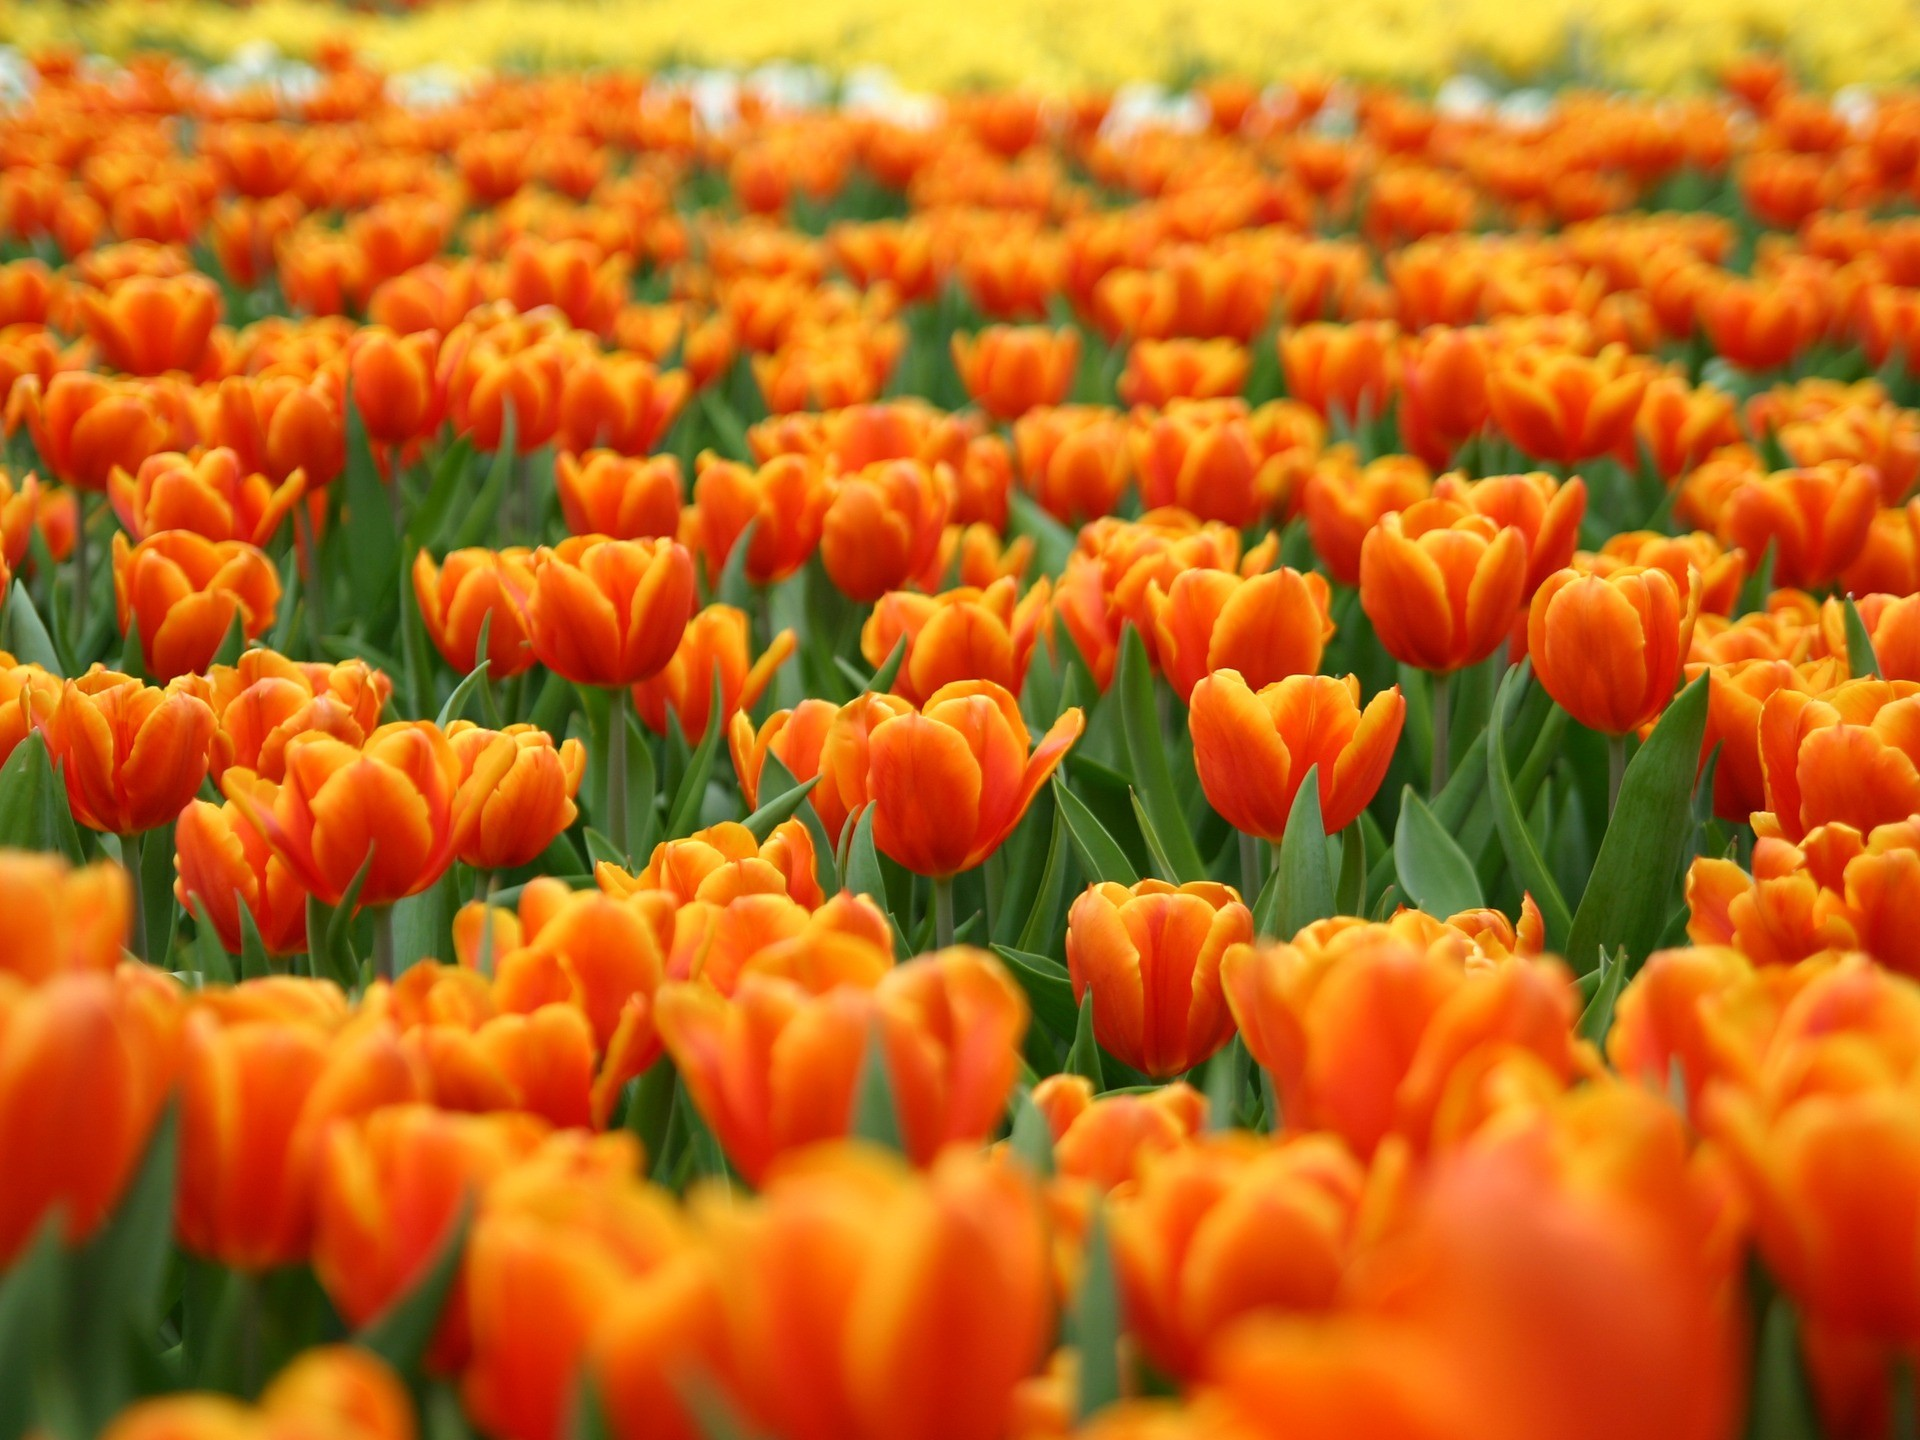 1920x1440 Orange Tulips Wallpaper Flowers Nature